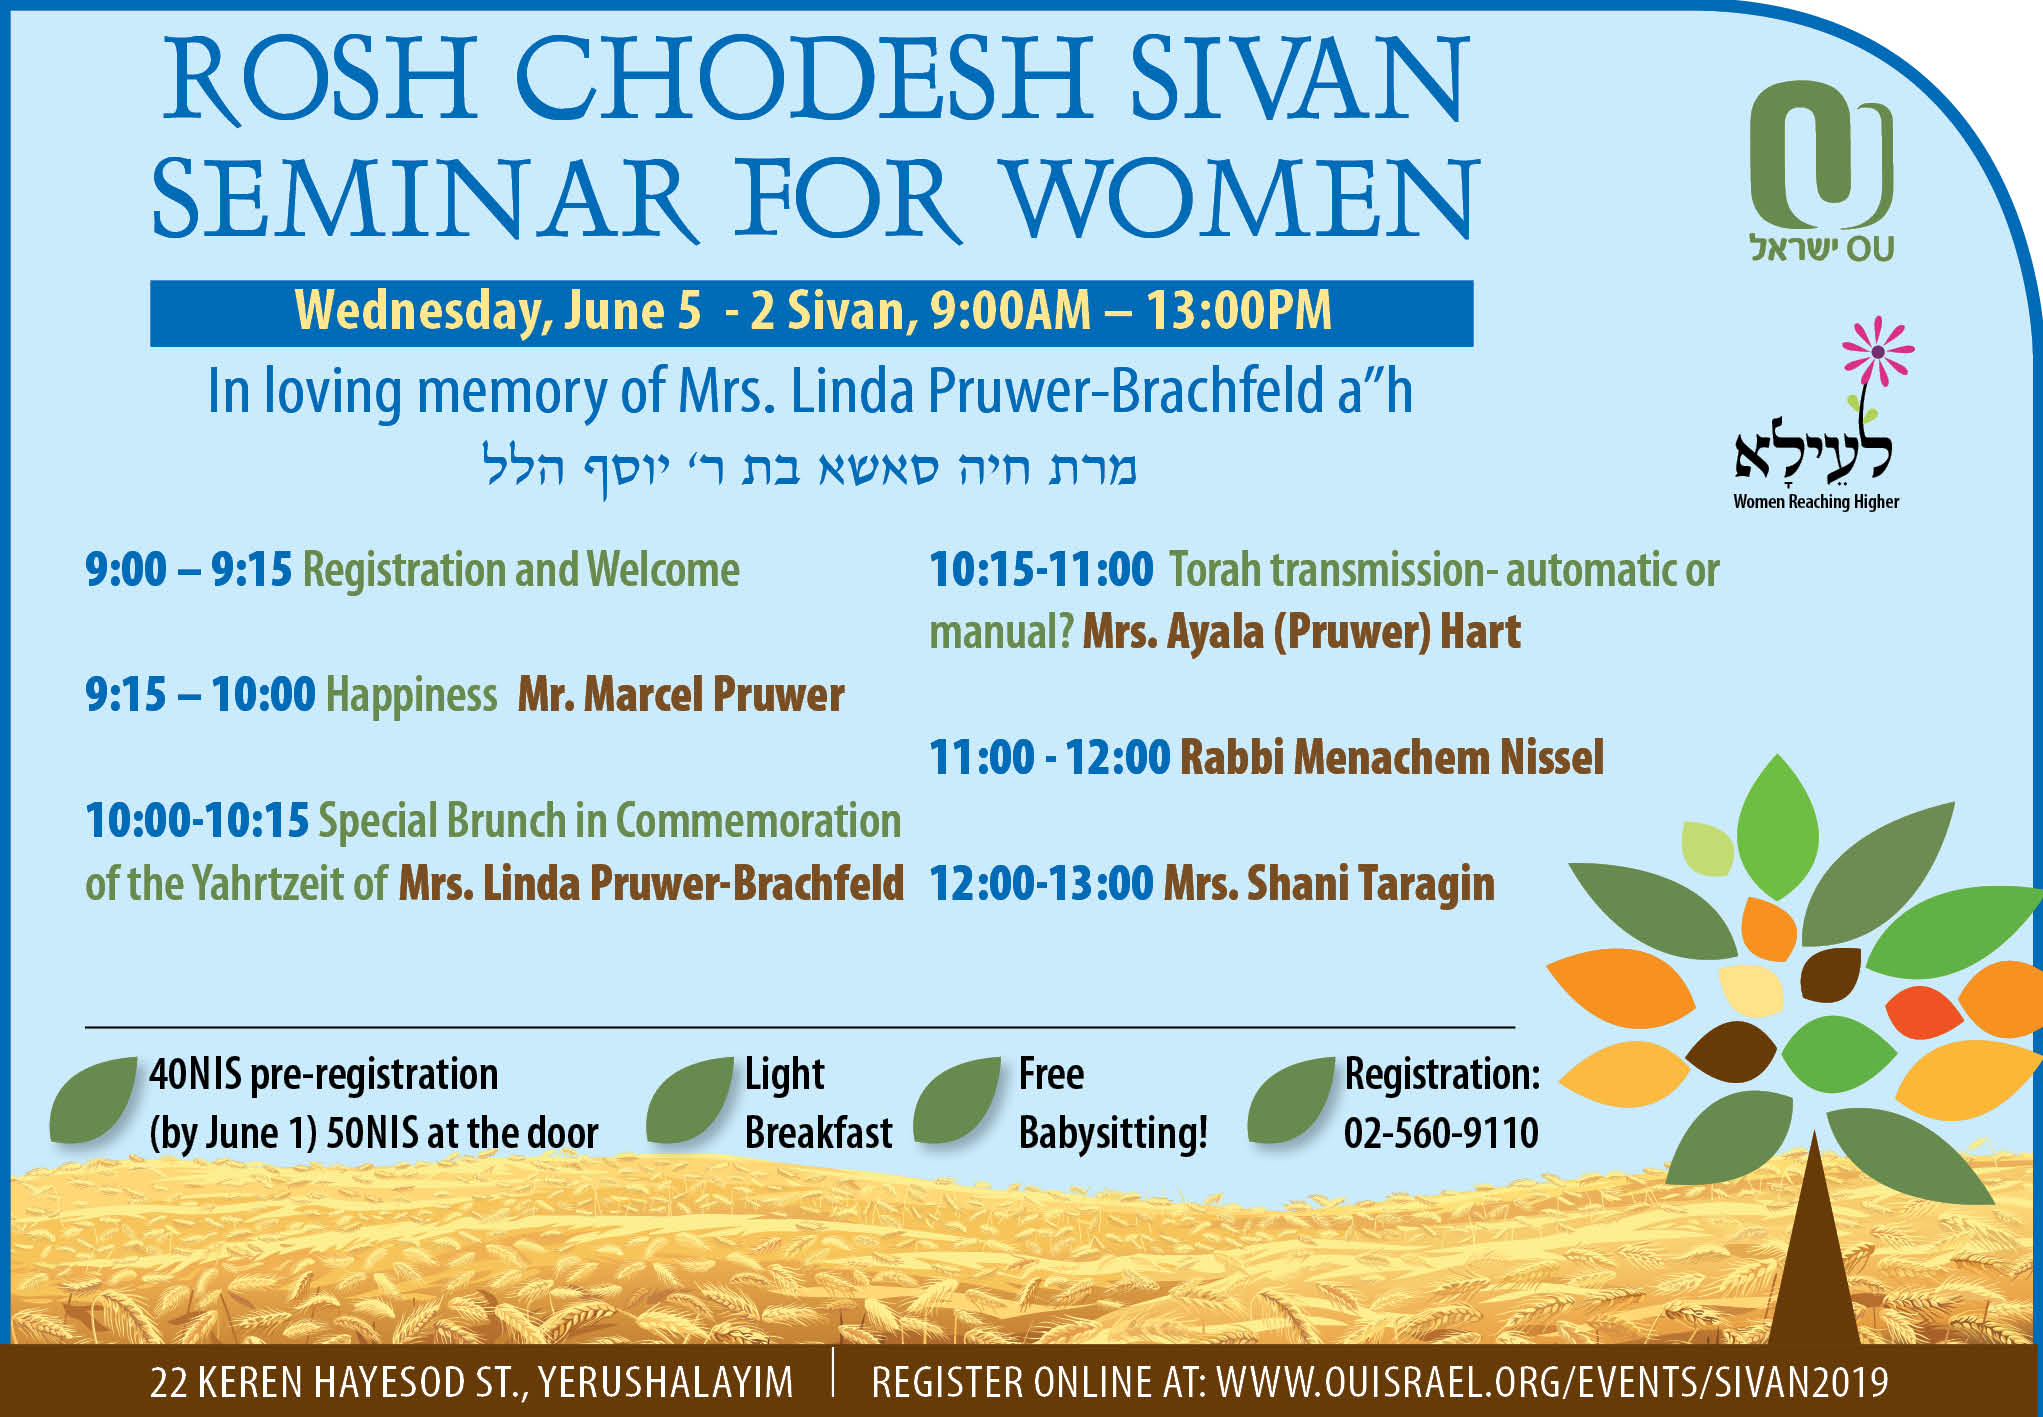 Rosh Chodesh 2019 Sivan Seminar for Women